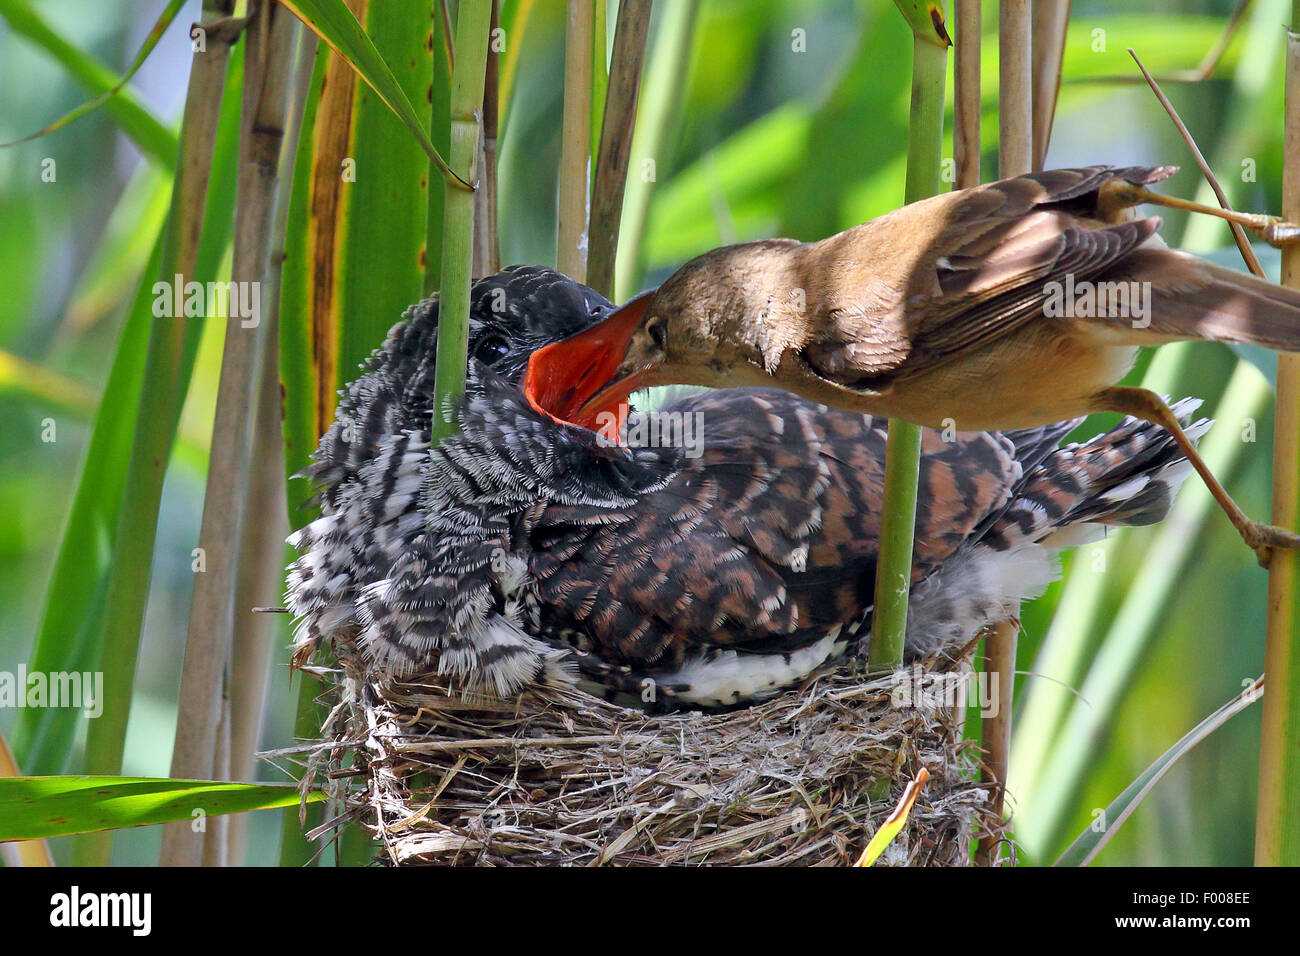 Eurasian cuckoo (Cuculus canorus), fledgling in the nest of a reed warbler, reed warbler feeding the cuckoo chick, - Stock Image